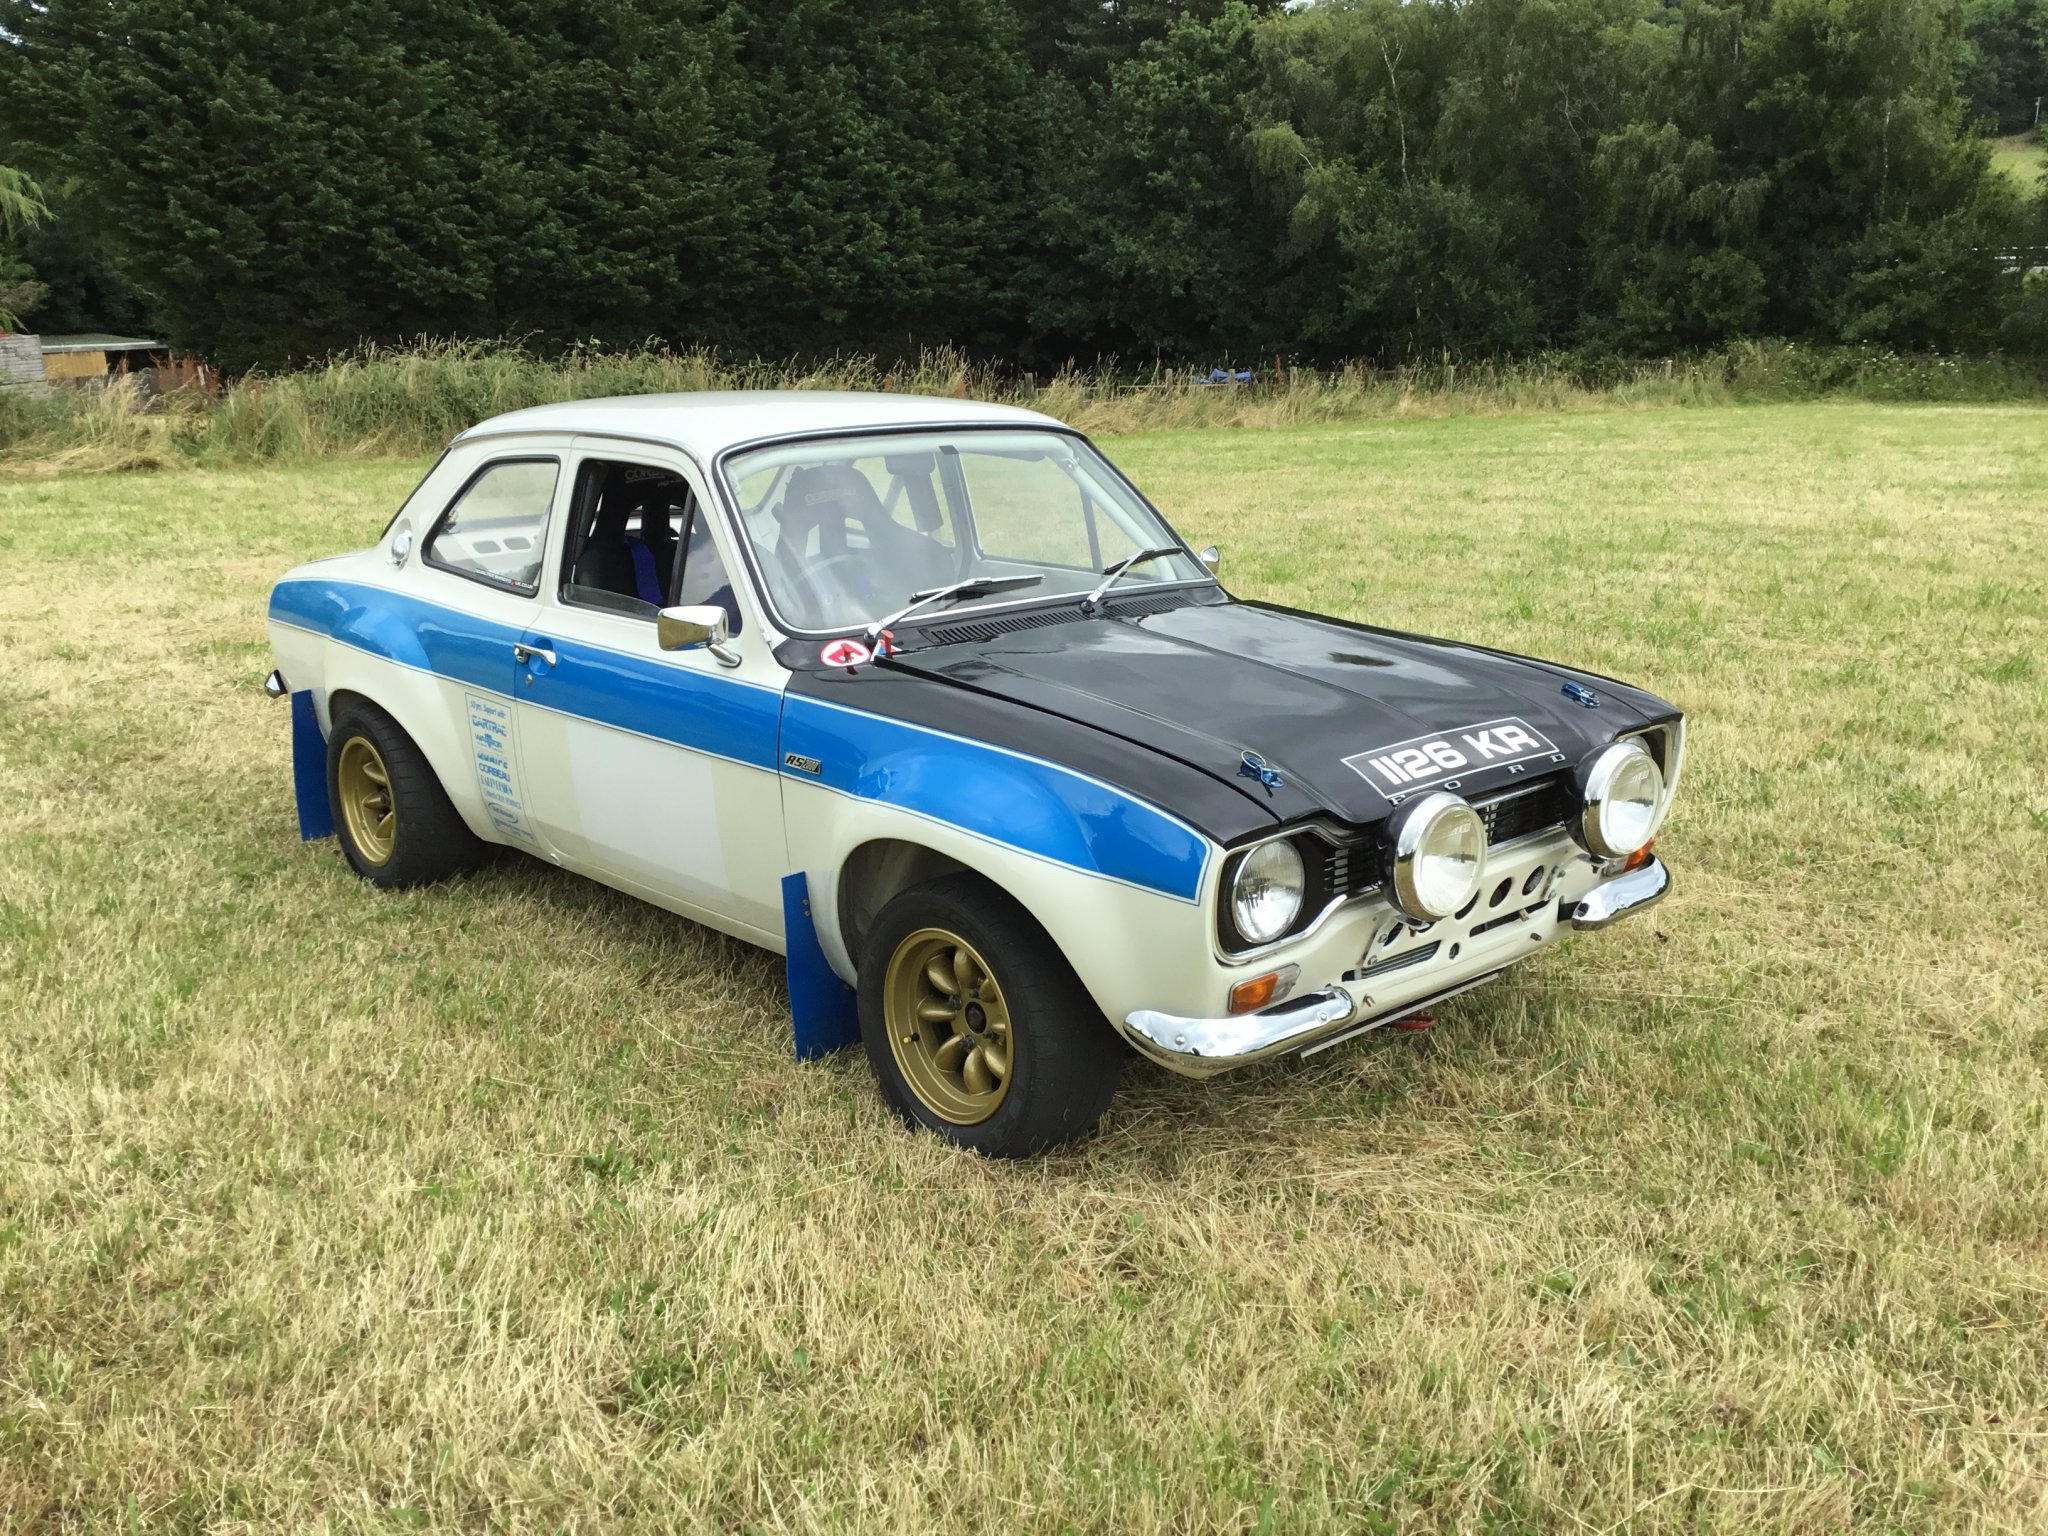 FORD ESCORT MK1 HISTORIC RALLY CAR | Historic Motorsport